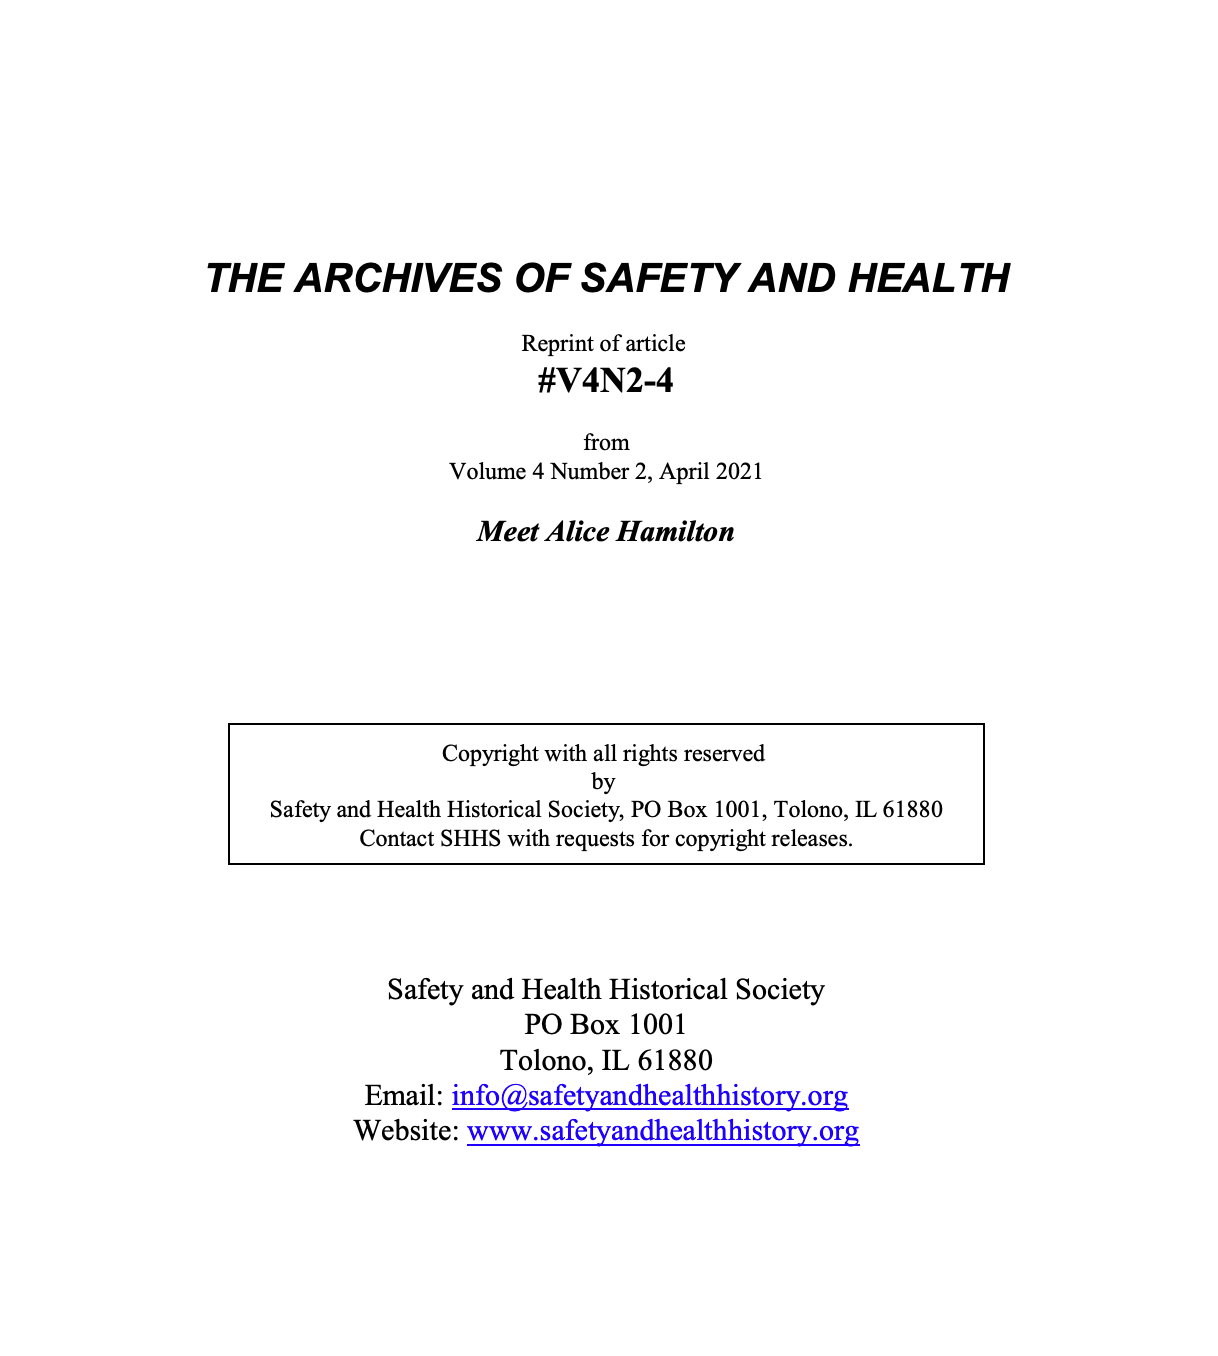 Full Article V4N2-4 of THE ARCHIVES OF SAFETY AND HEALTH - Meet Alice Hamilton